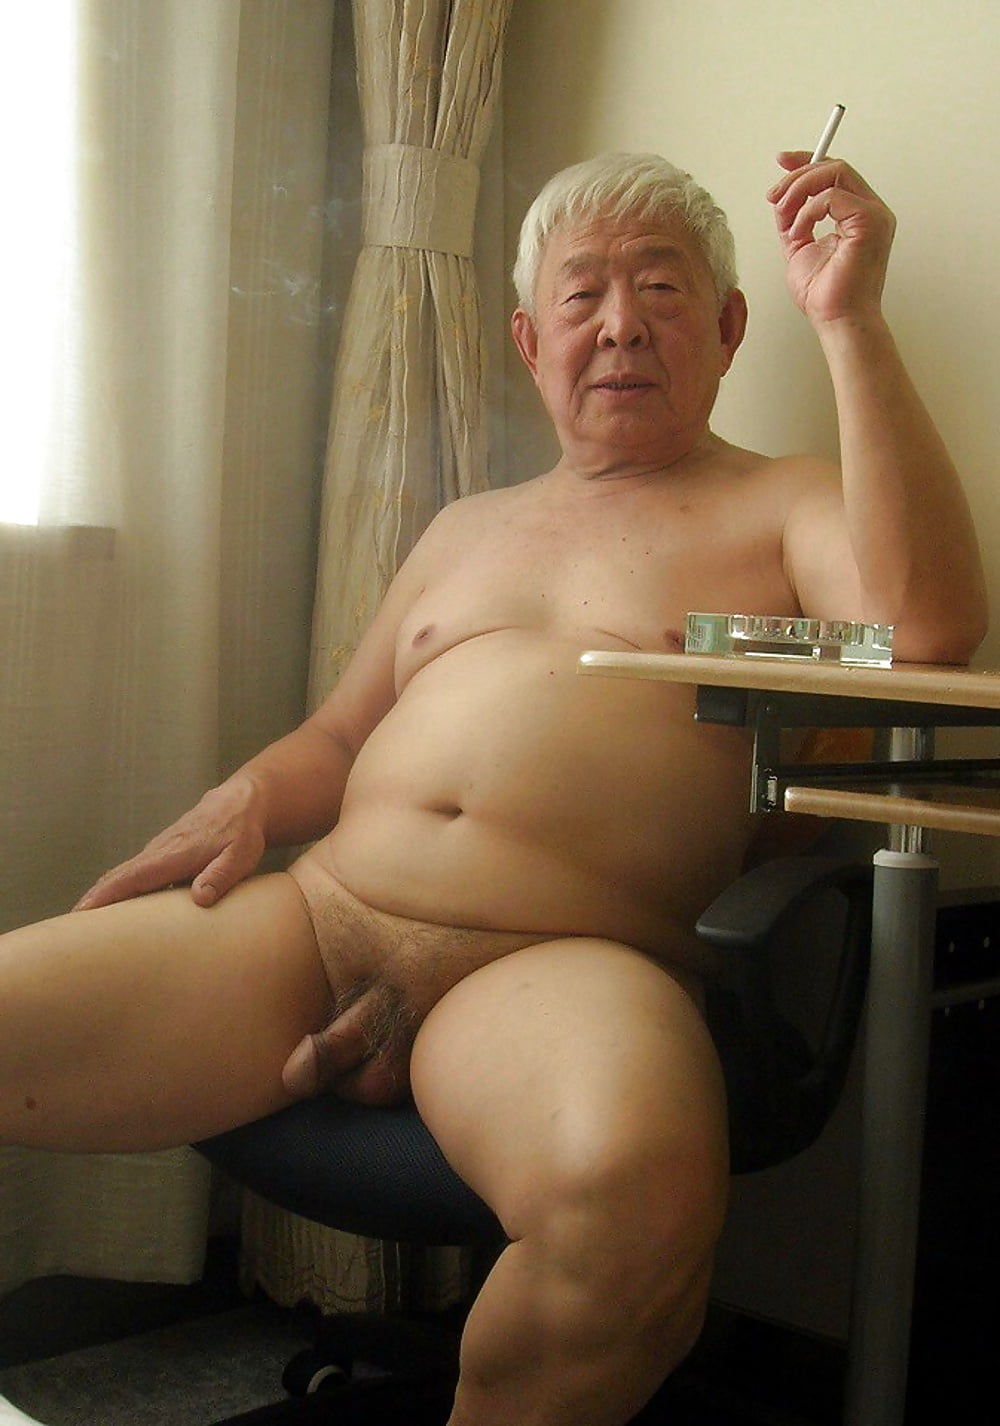 Mature straight men nude and naked chinese gay man today, we welcome